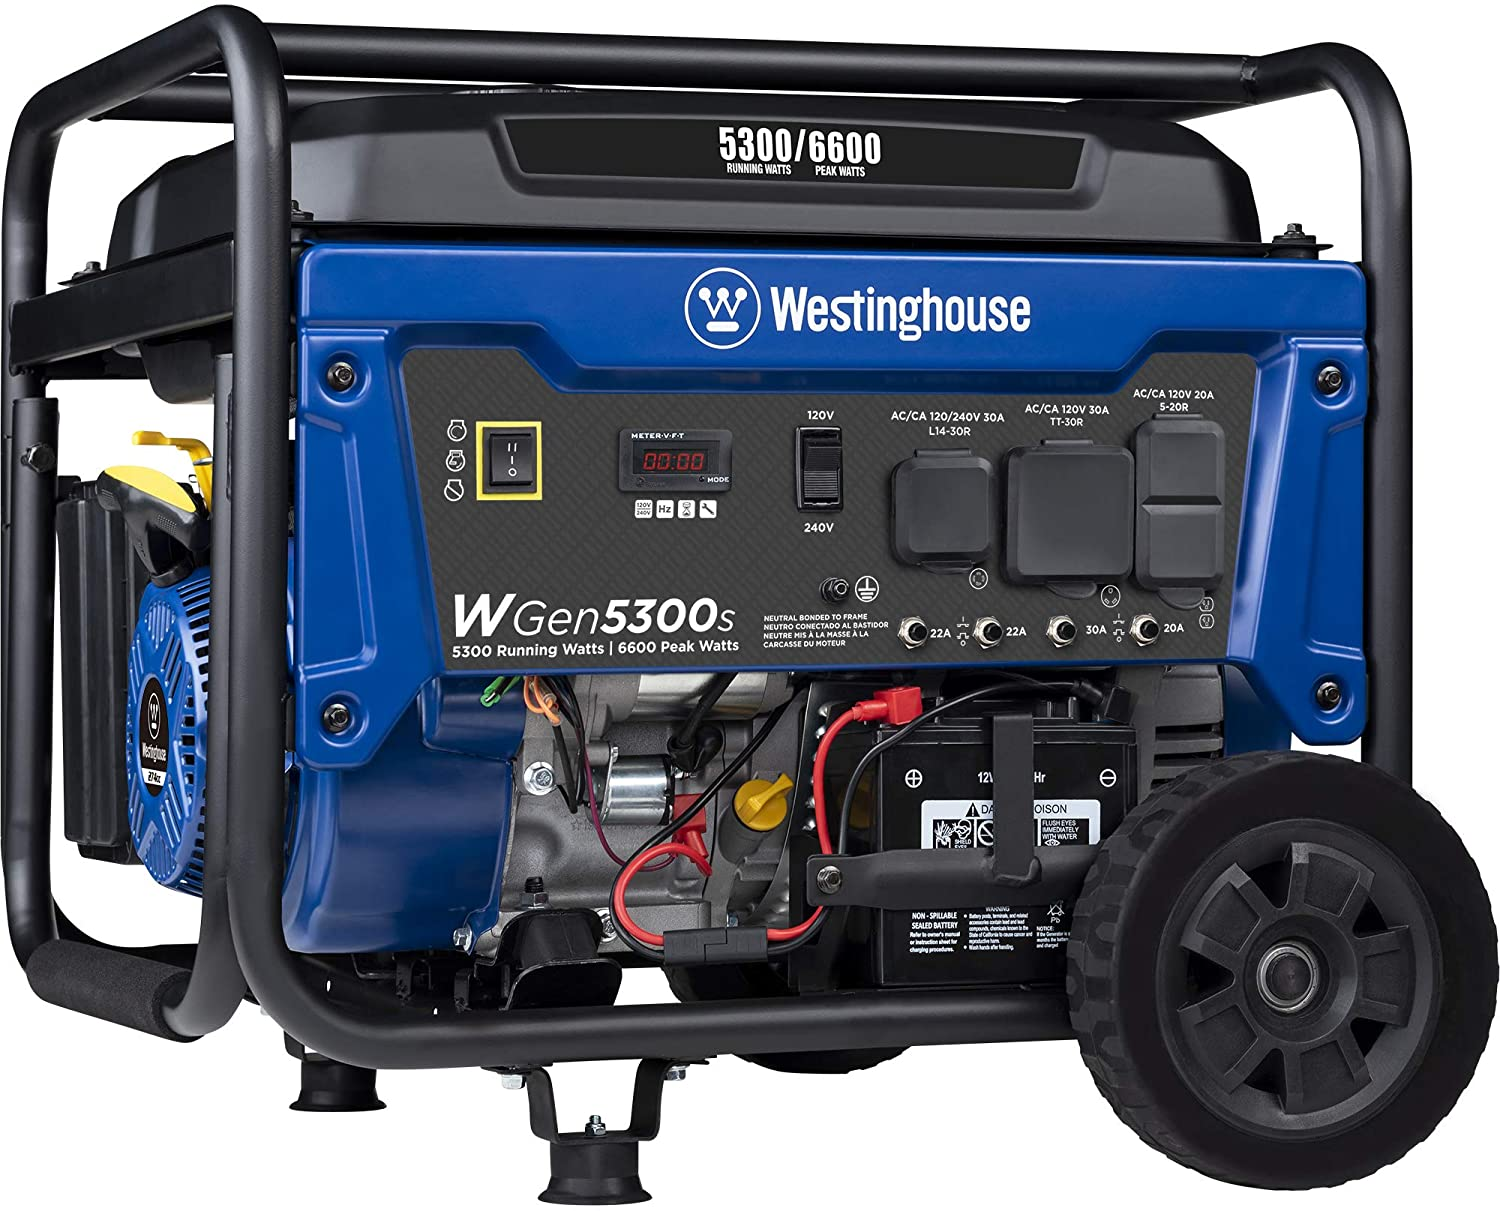 Westinghouse WGen5300s Storm Portable Generator with Electric Start and 120/240 Volt Selector 5300 Rated 6600 Peak Watts Gas Powered, CARB Compliant, RV and Transfer Switch Ready